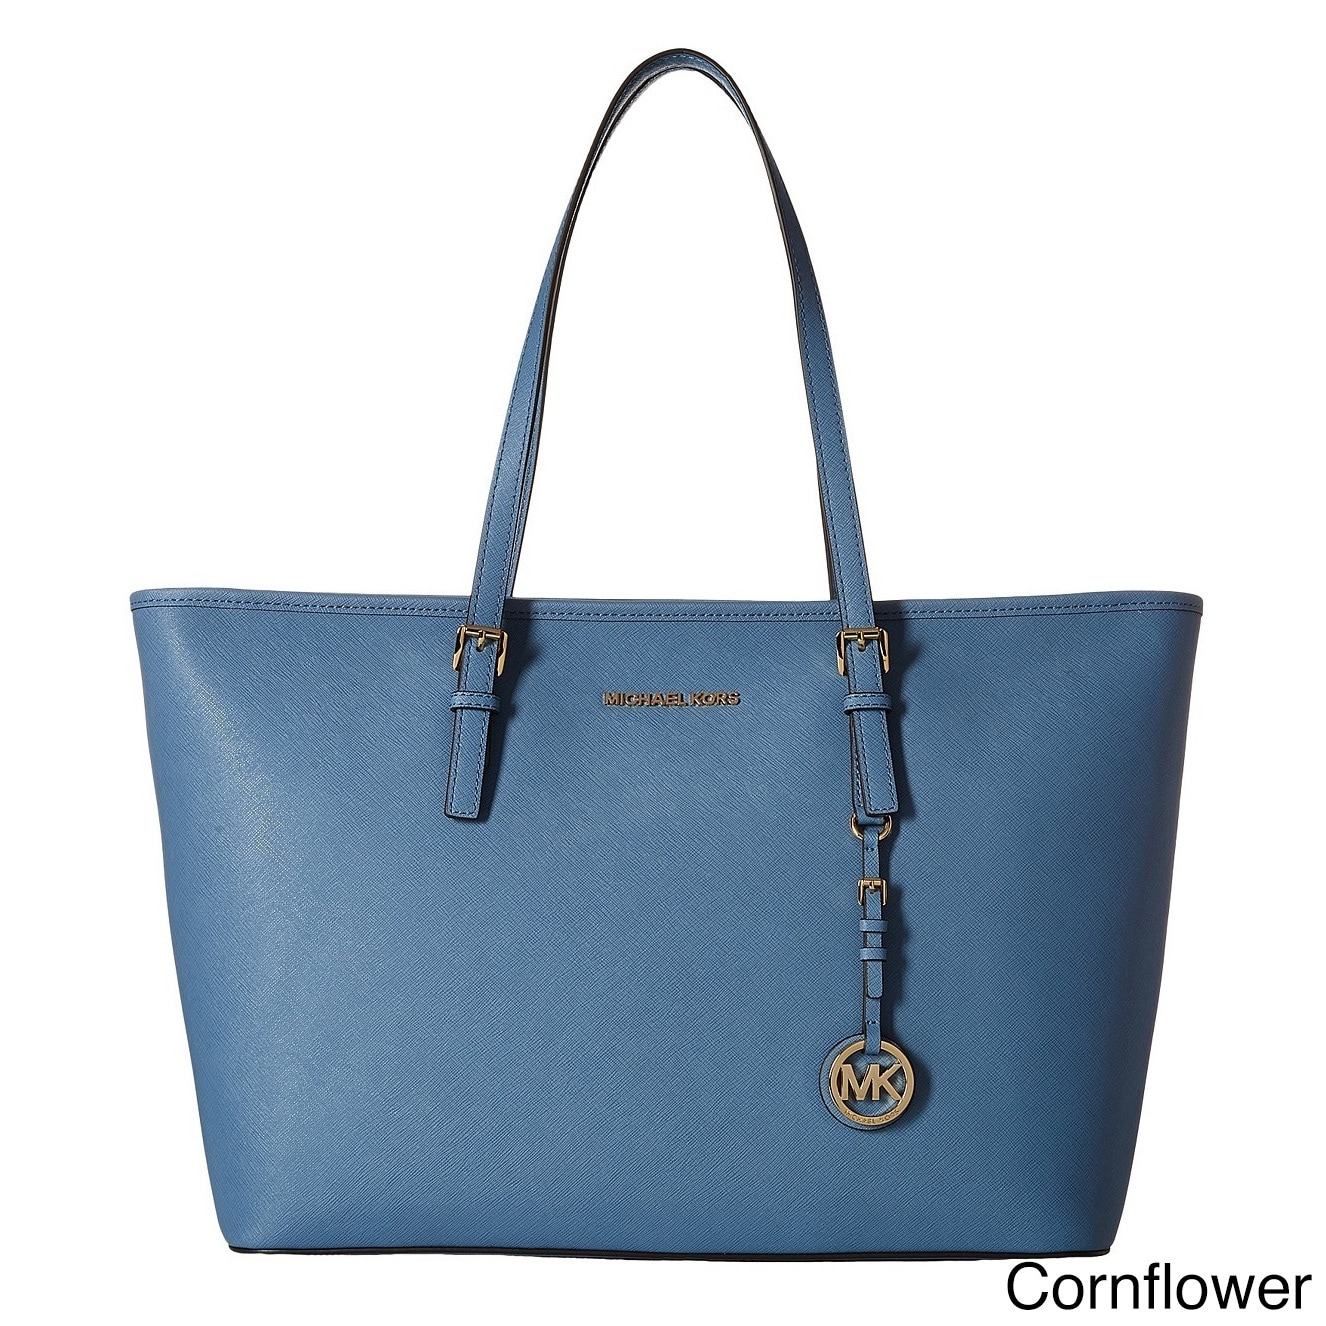 c743a824ec8f Shop Michael Kors Jet Set Medium Saffiano Leather Tote Bag - Free Shipping  Today - Overstock - 10701567